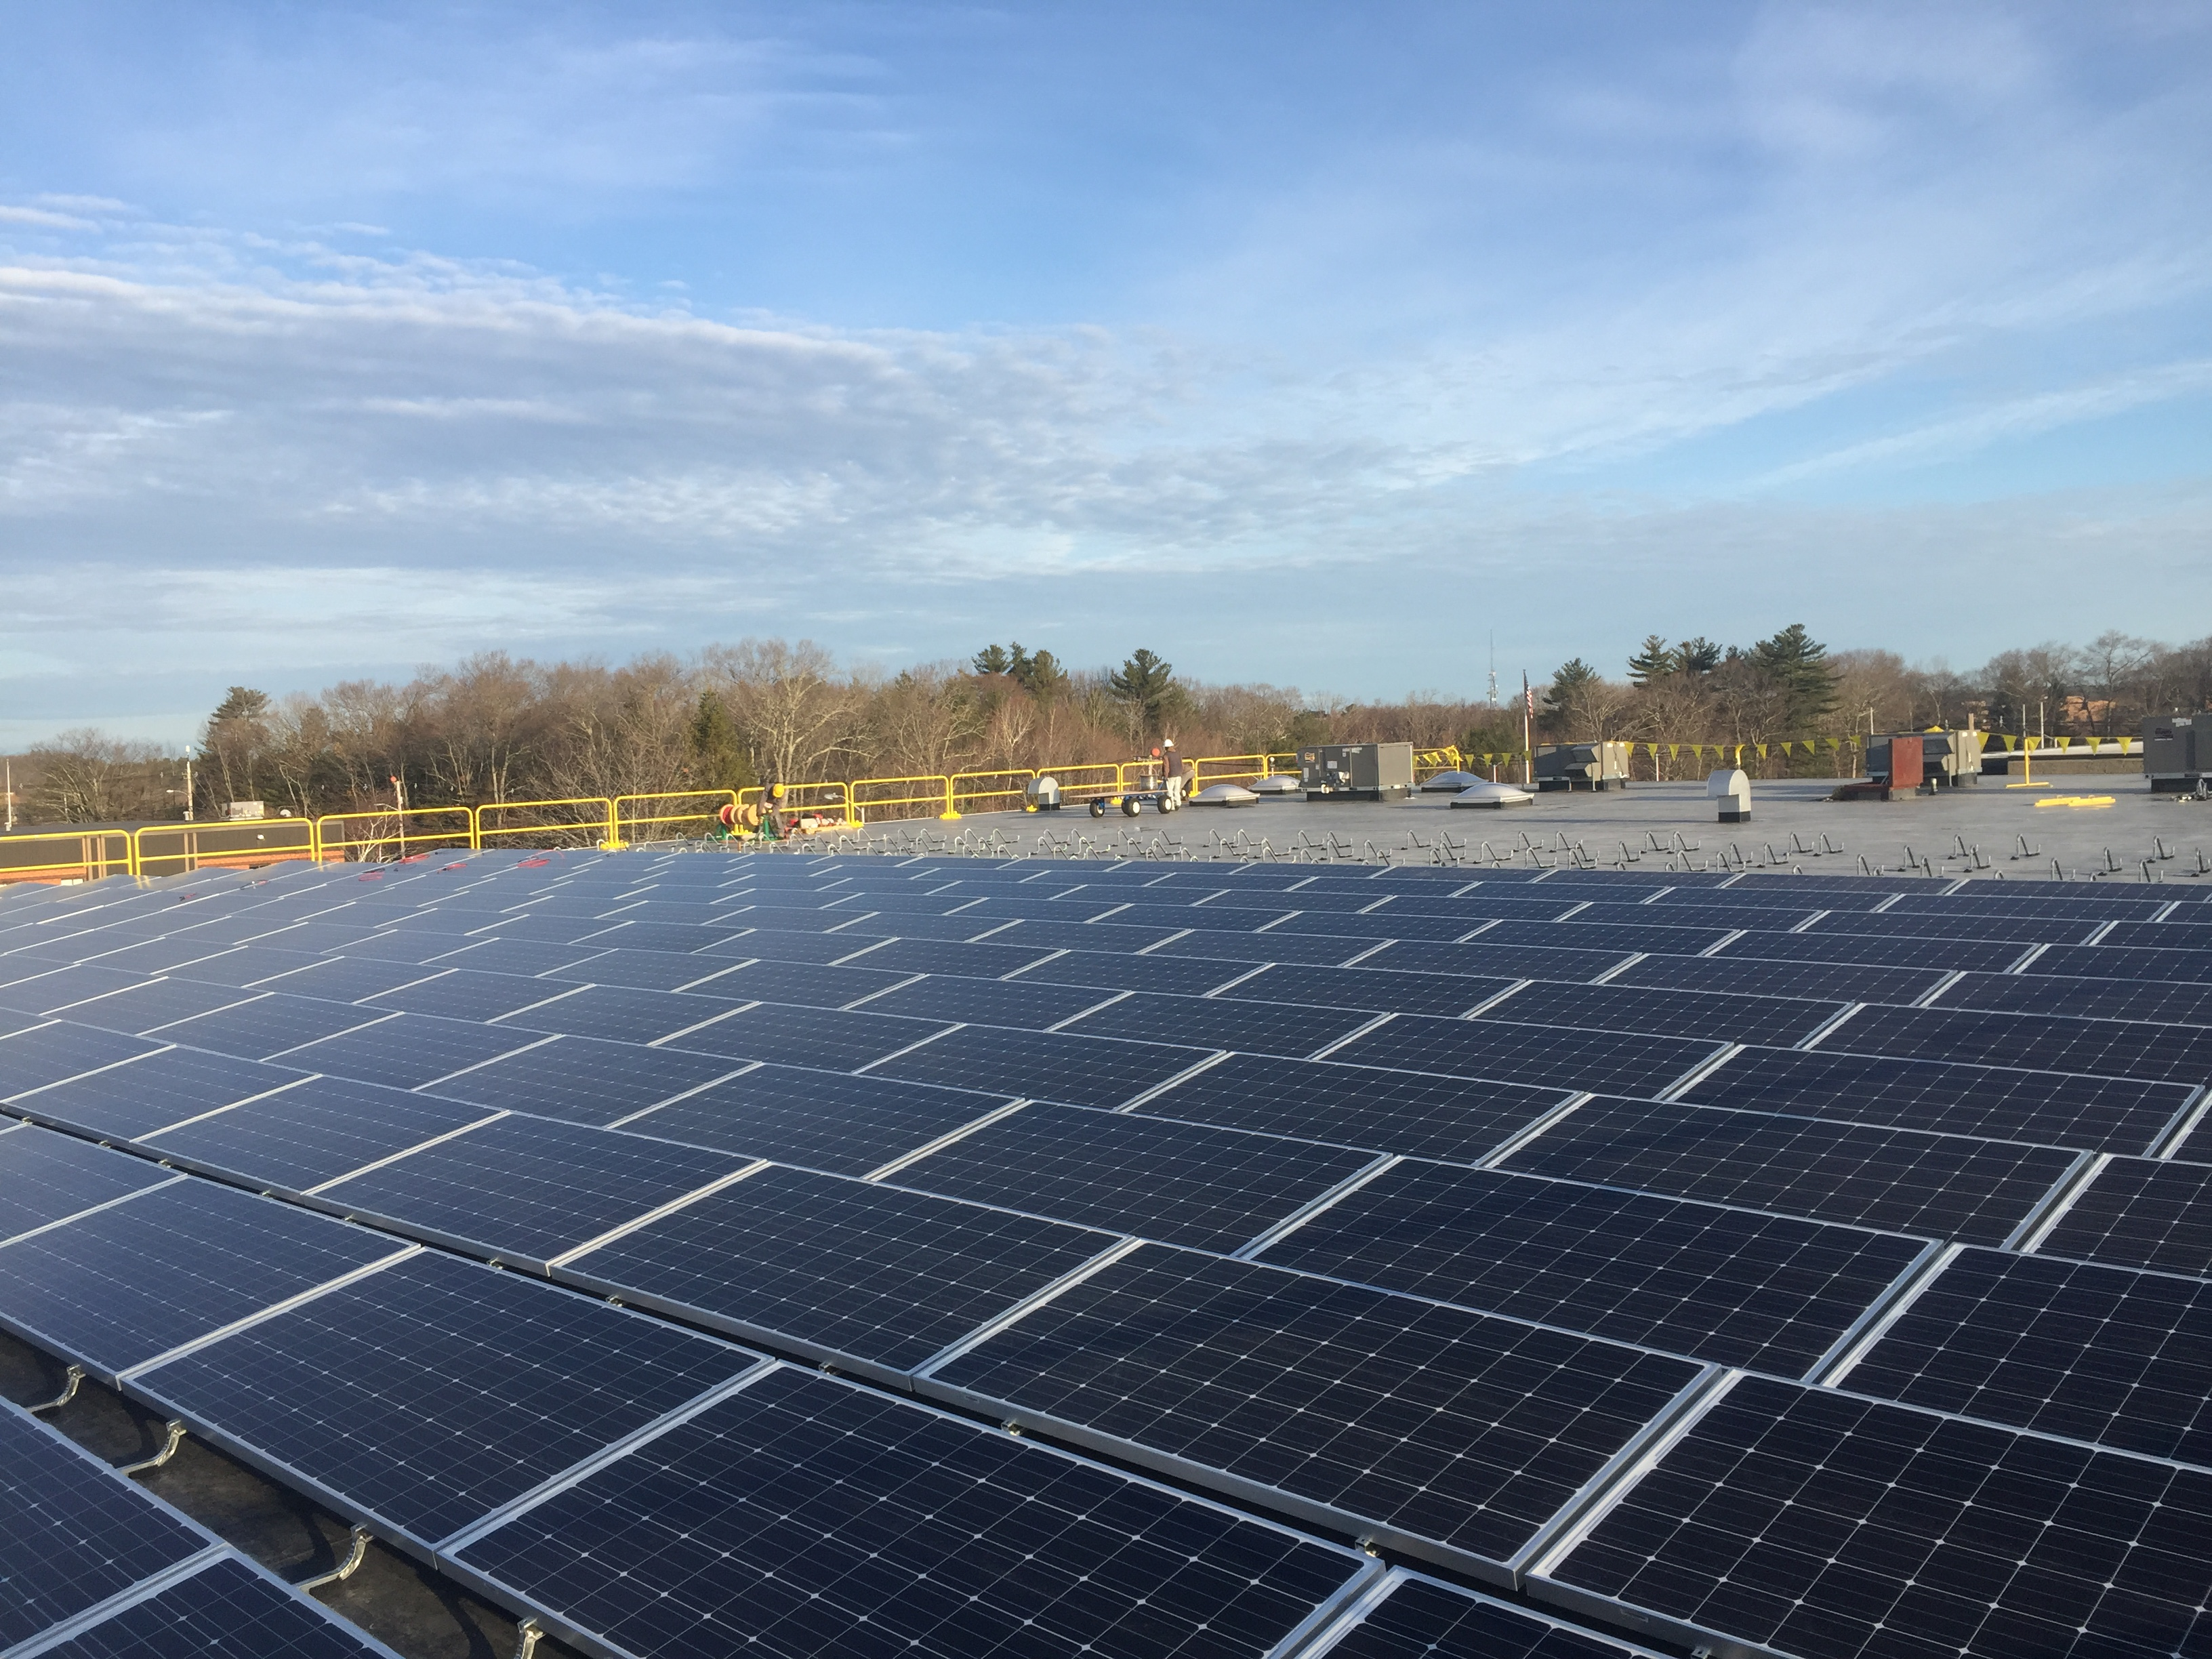 This 131kW DC solar system for Baynes Electric Supply Co provides